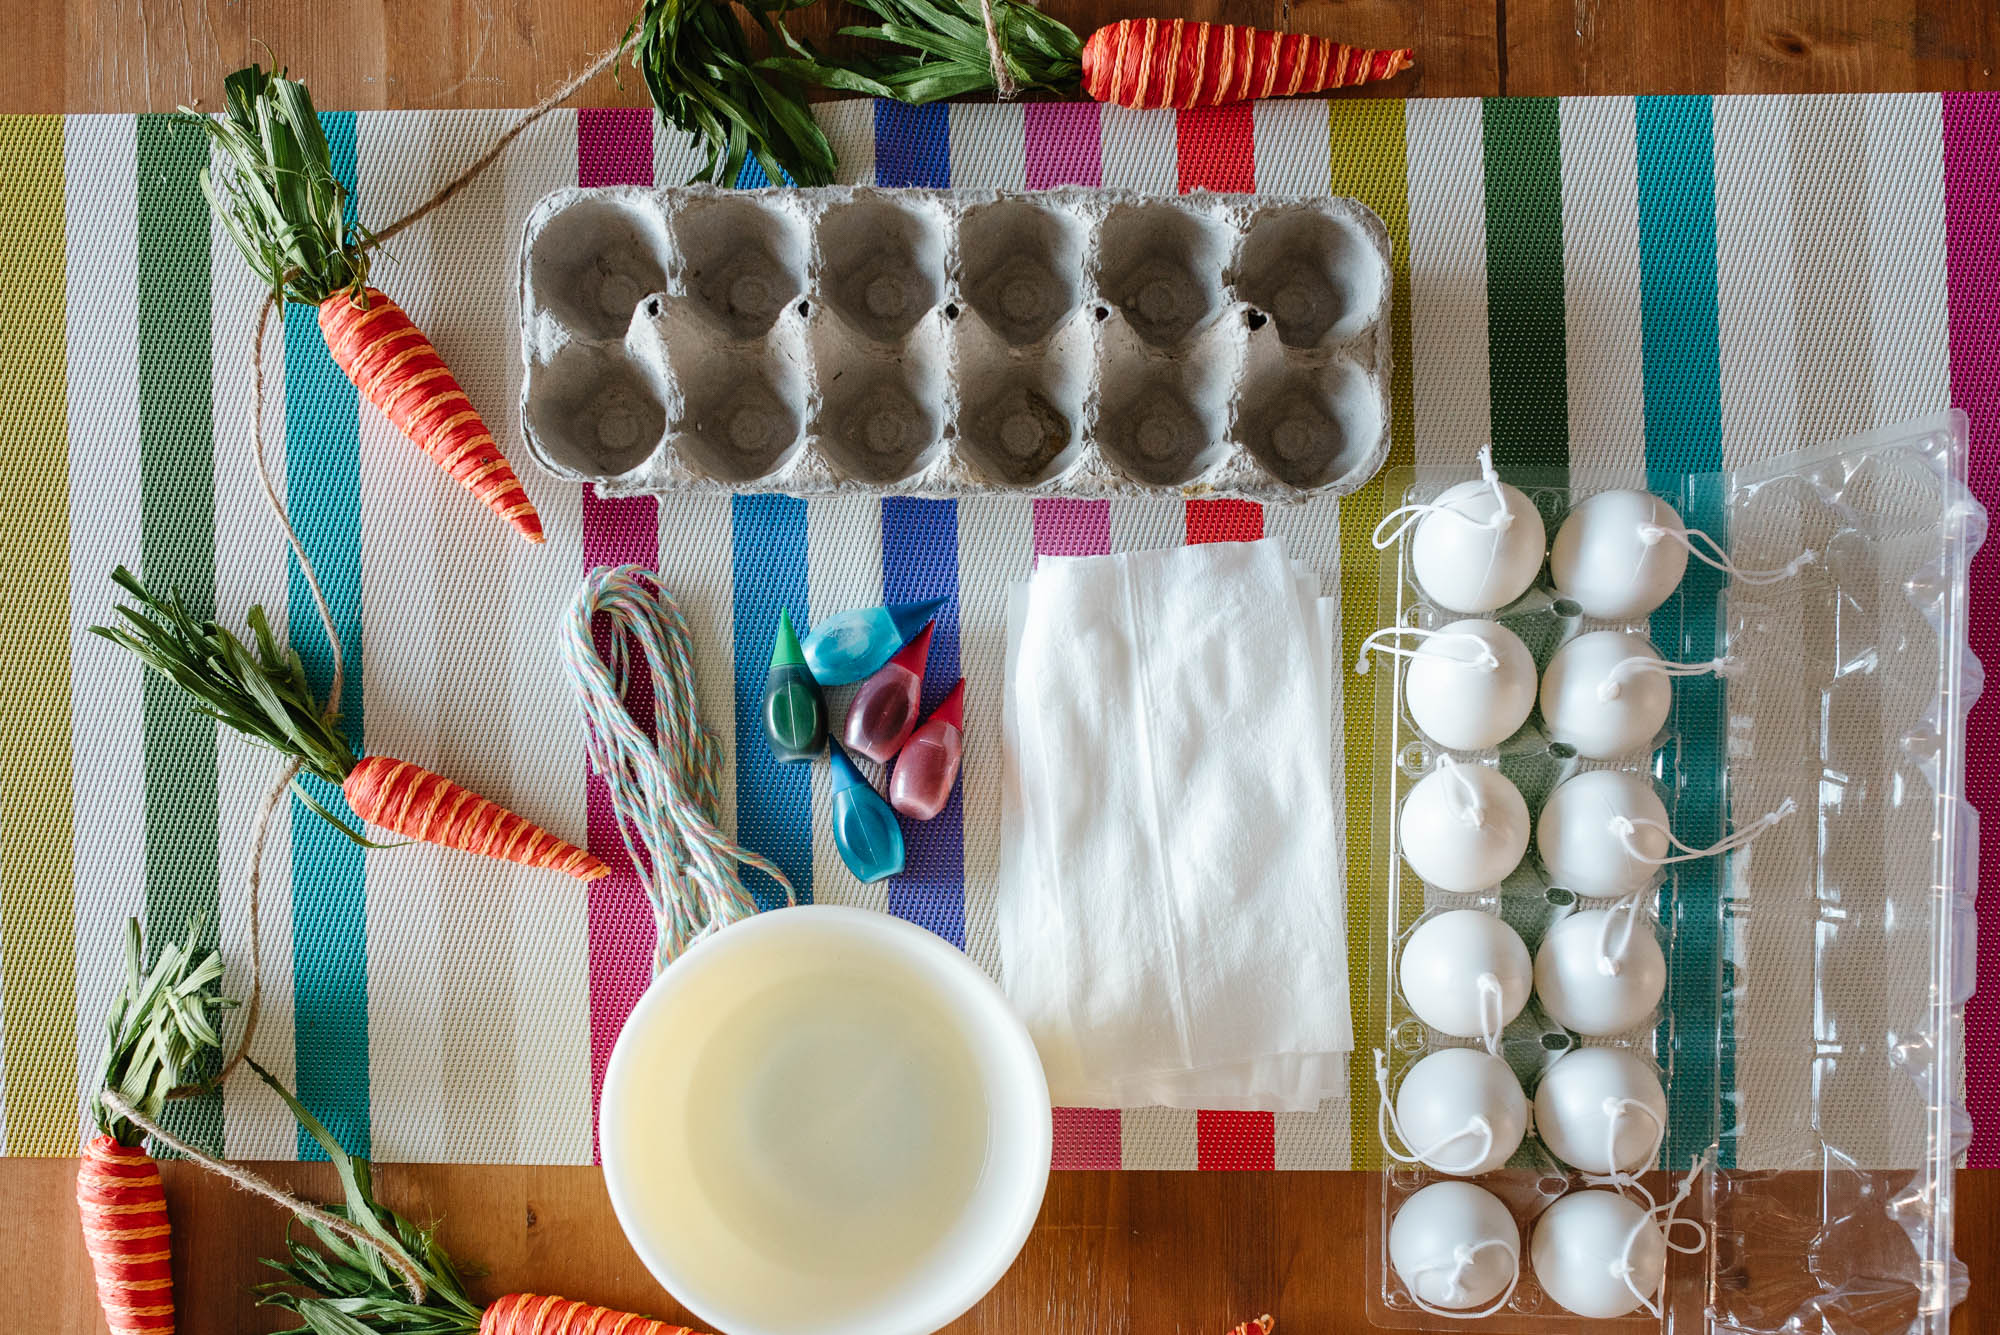 sara-wilde-collective-tie-dye-easter-eggs-food-colouring-5.jpg